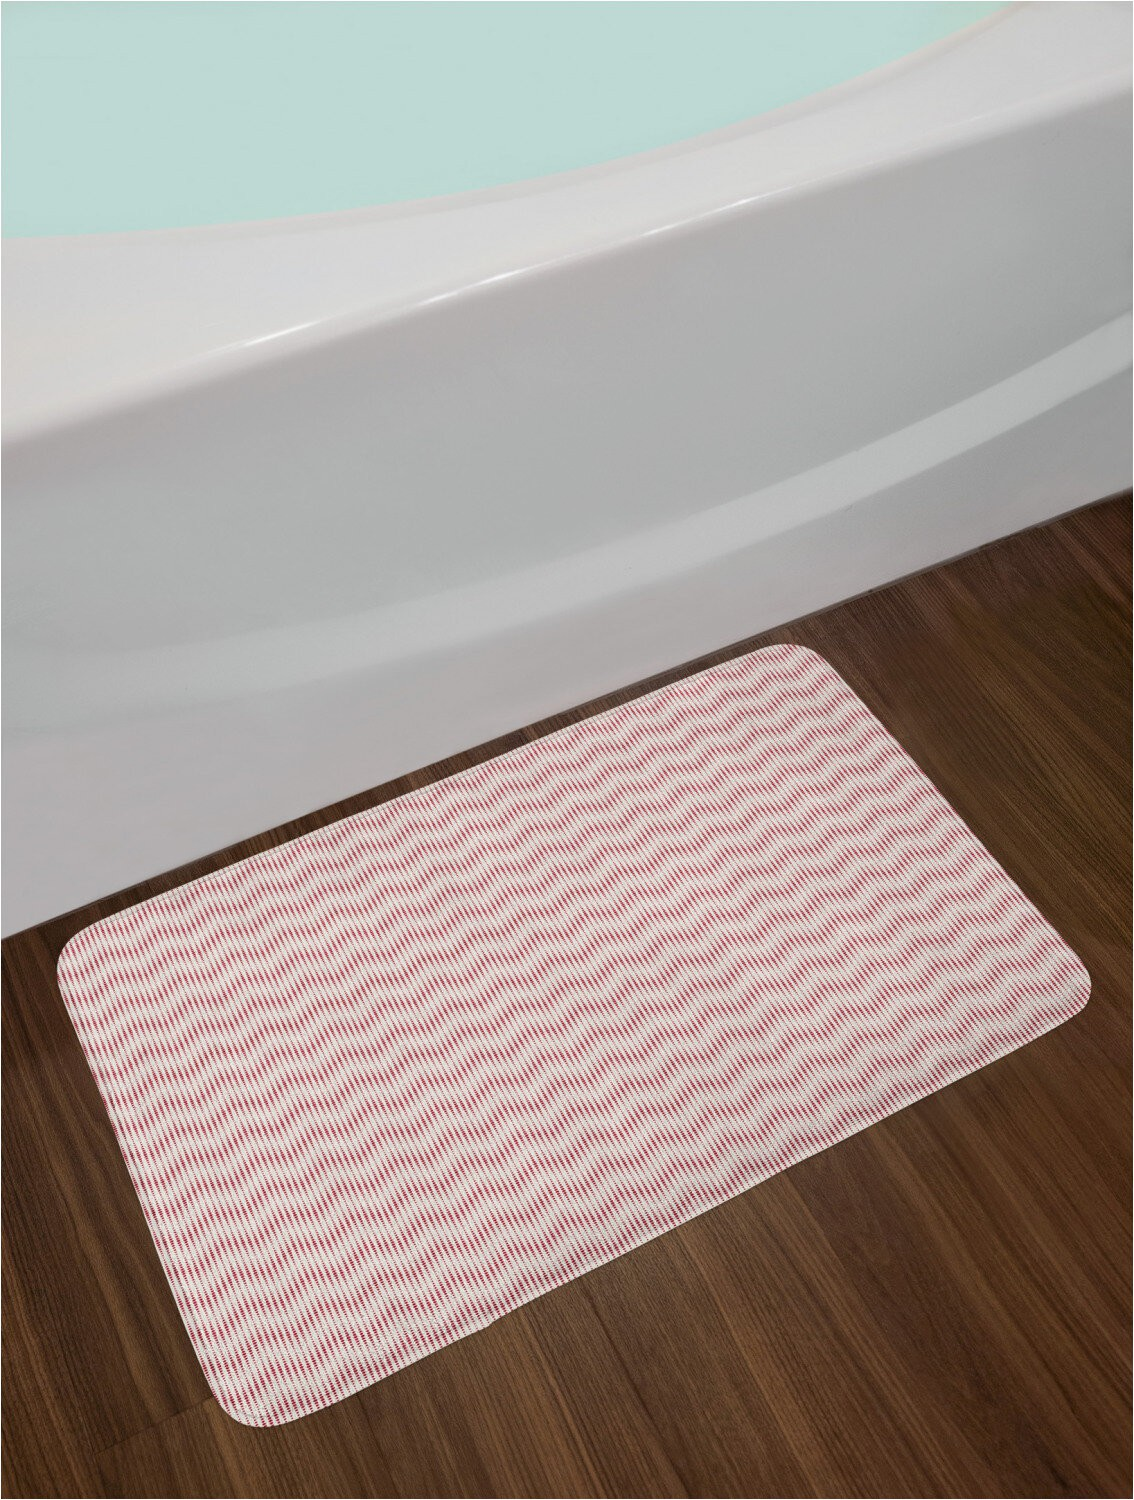 Chenille Lines Bath Rug Collection Vertical Lines From Halftone Spots Bath Rug